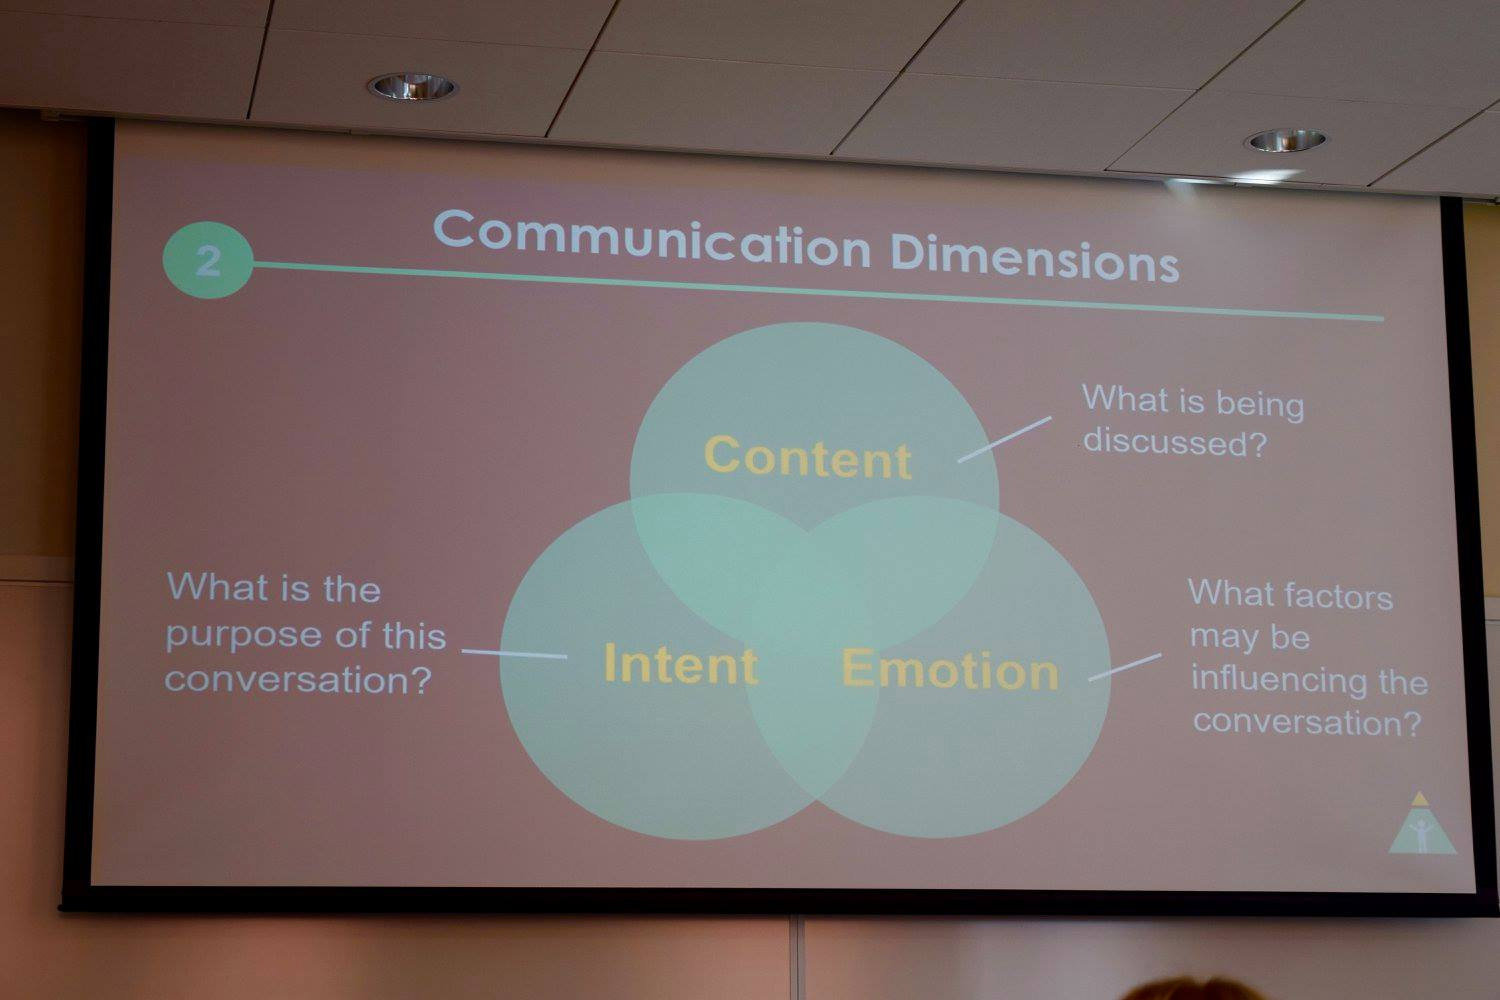 CommunicationDimensions